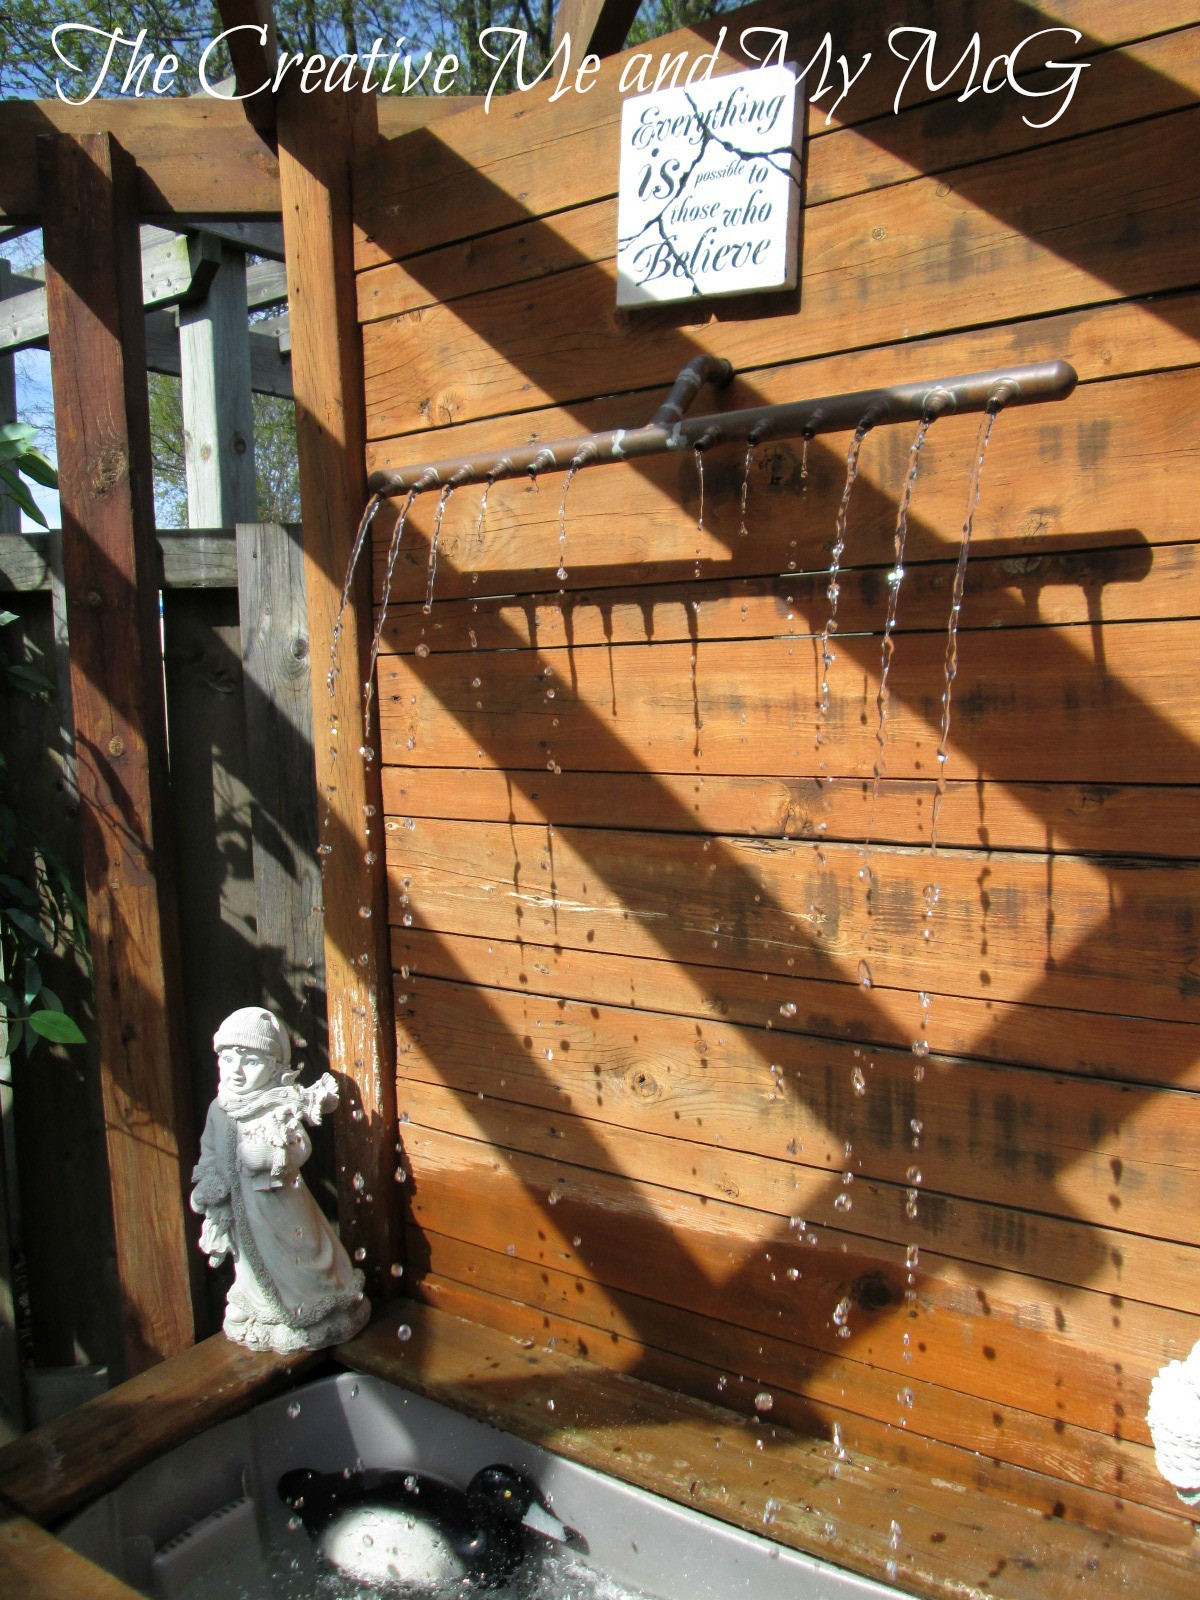 Best ideas about DIY Sound Masking . Save or Pin The Creative Me and My McG DIY Water Feature Now.